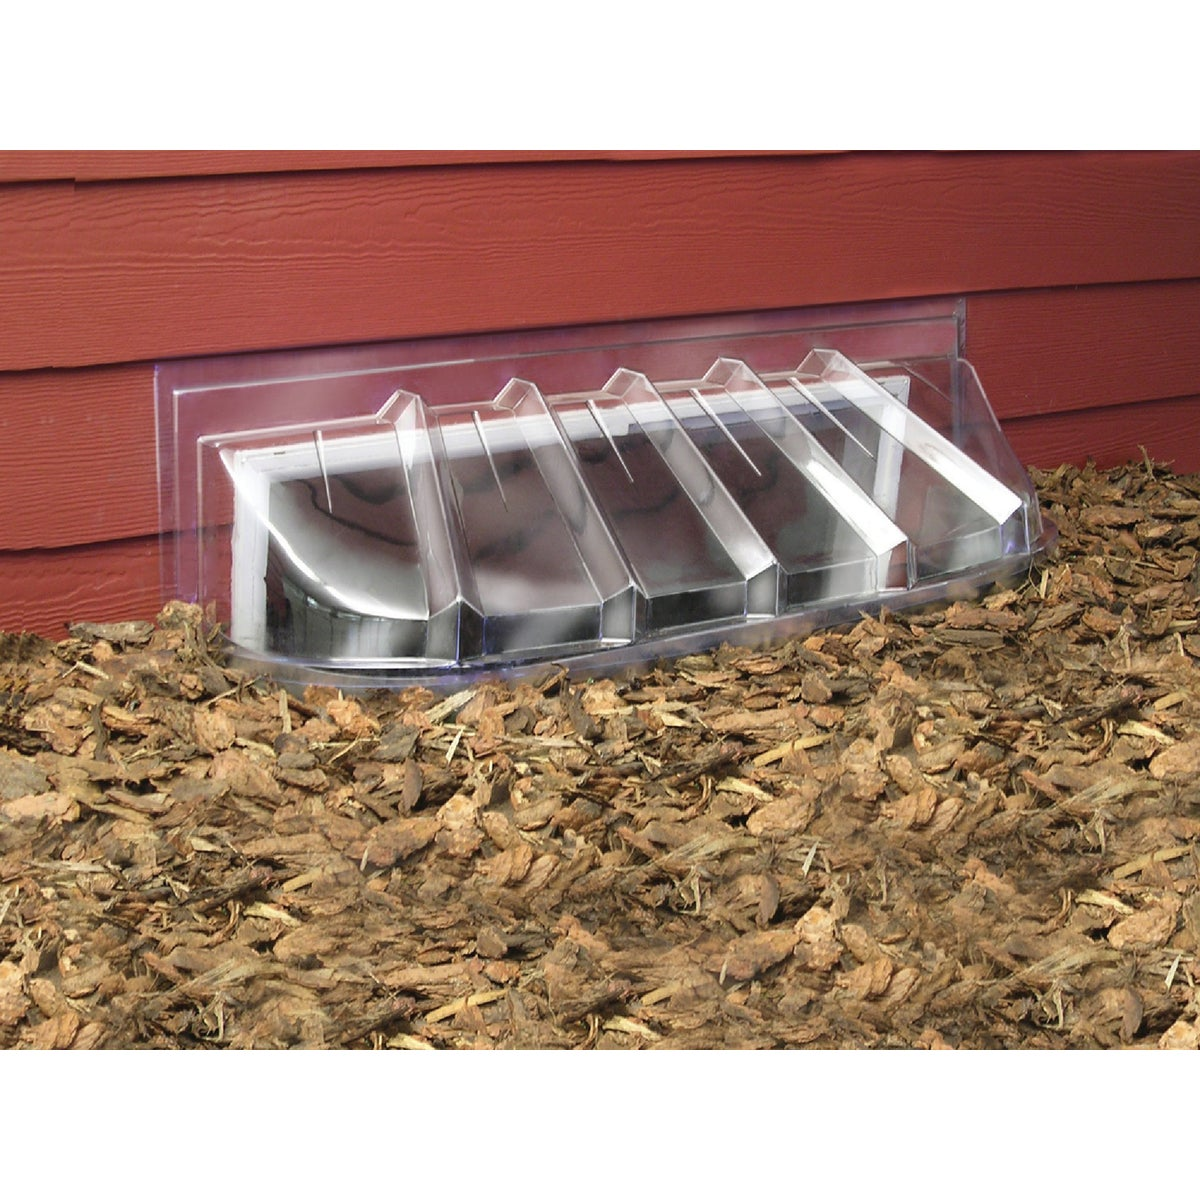 42X14 WINDOW WELL COVER - W4214 by Maccourt Products